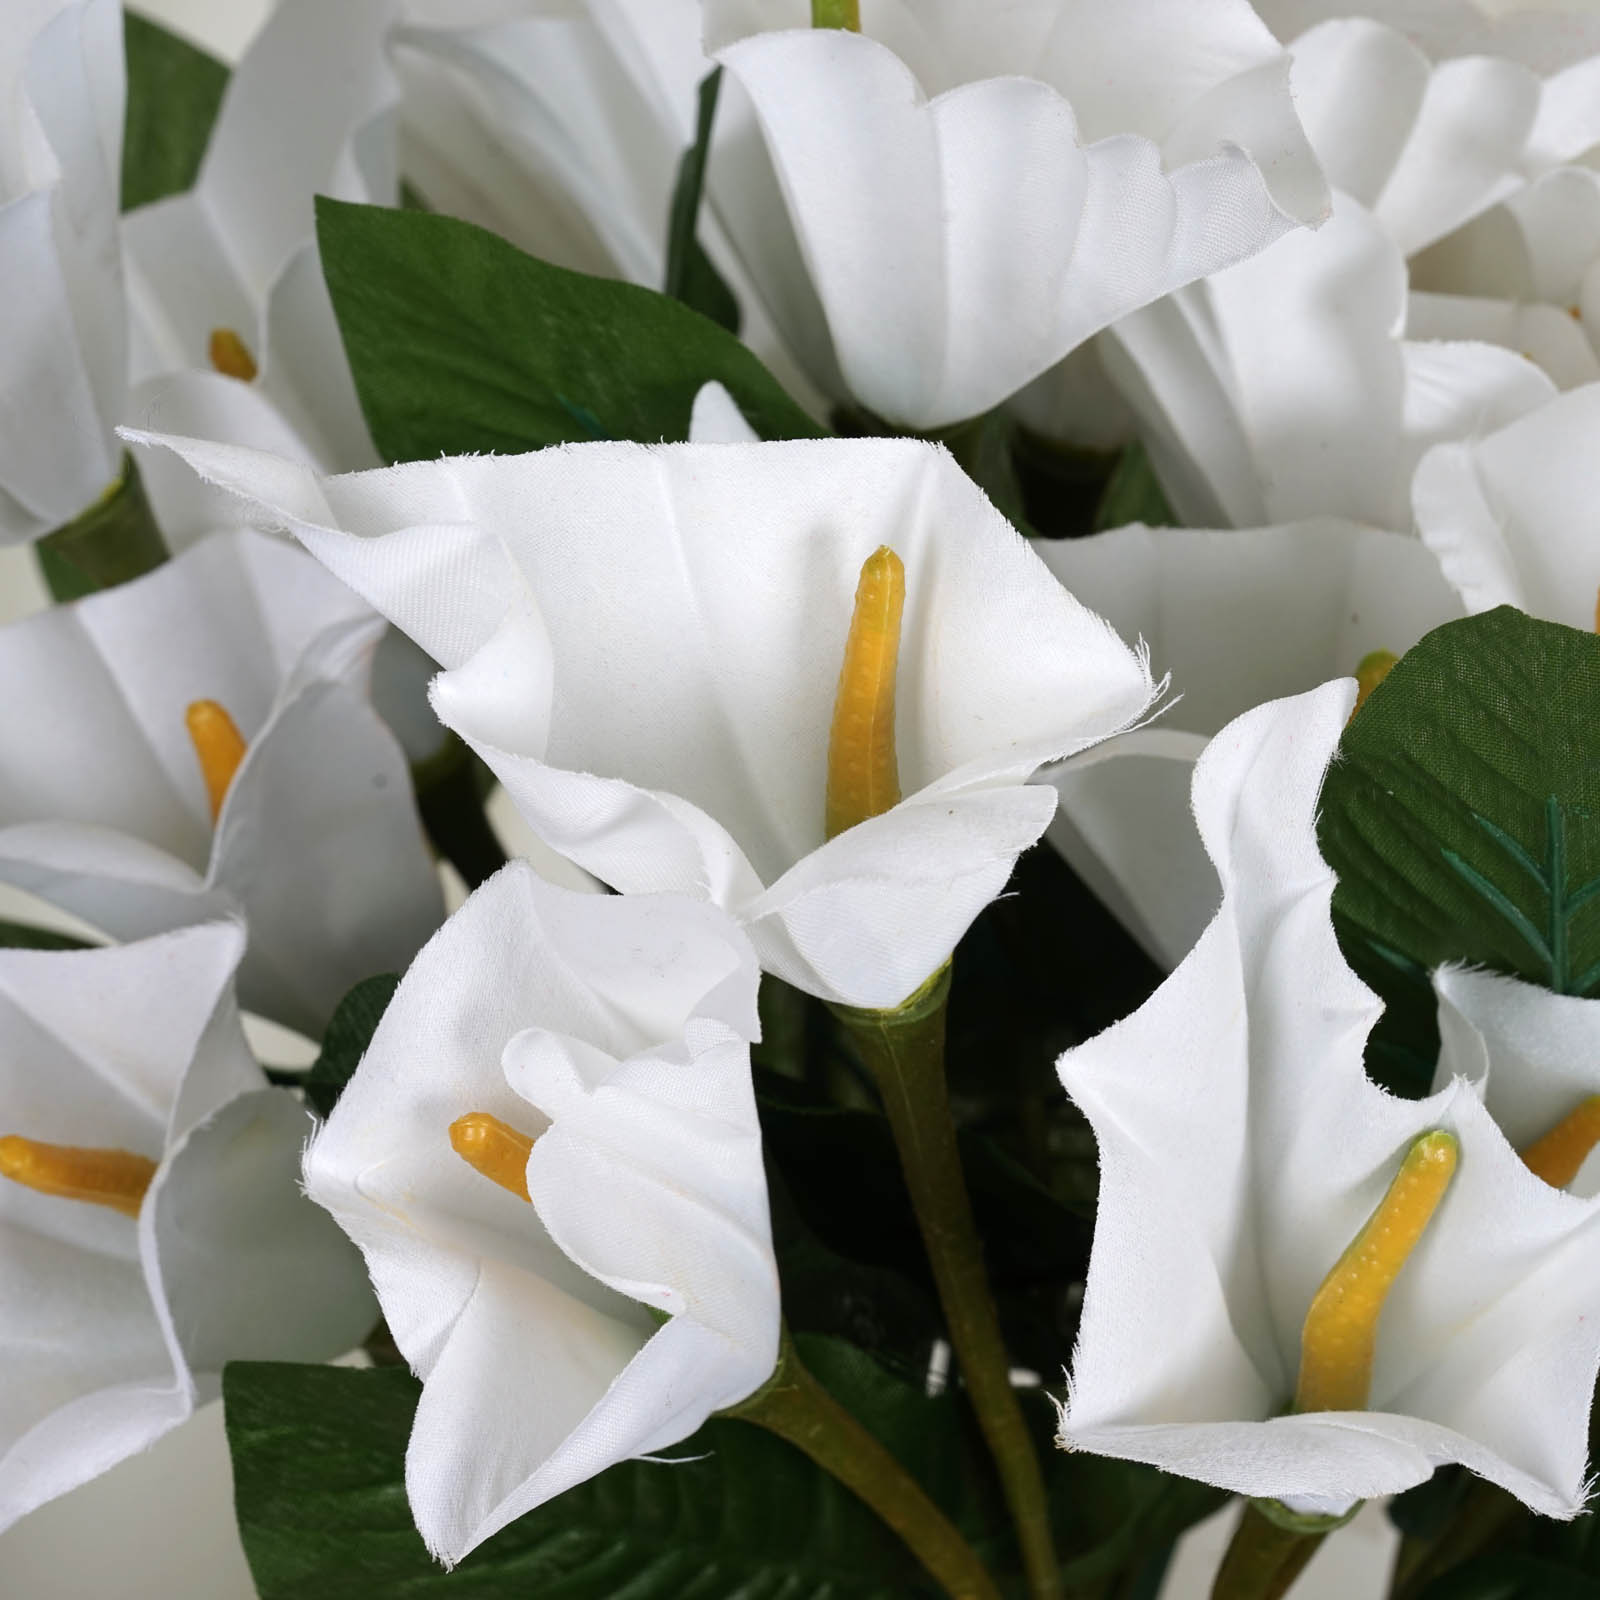 168 silk calla lily flowers for wedding bouquets centerpieces 168 silk calla lily flowers for wedding bouquets izmirmasajfo